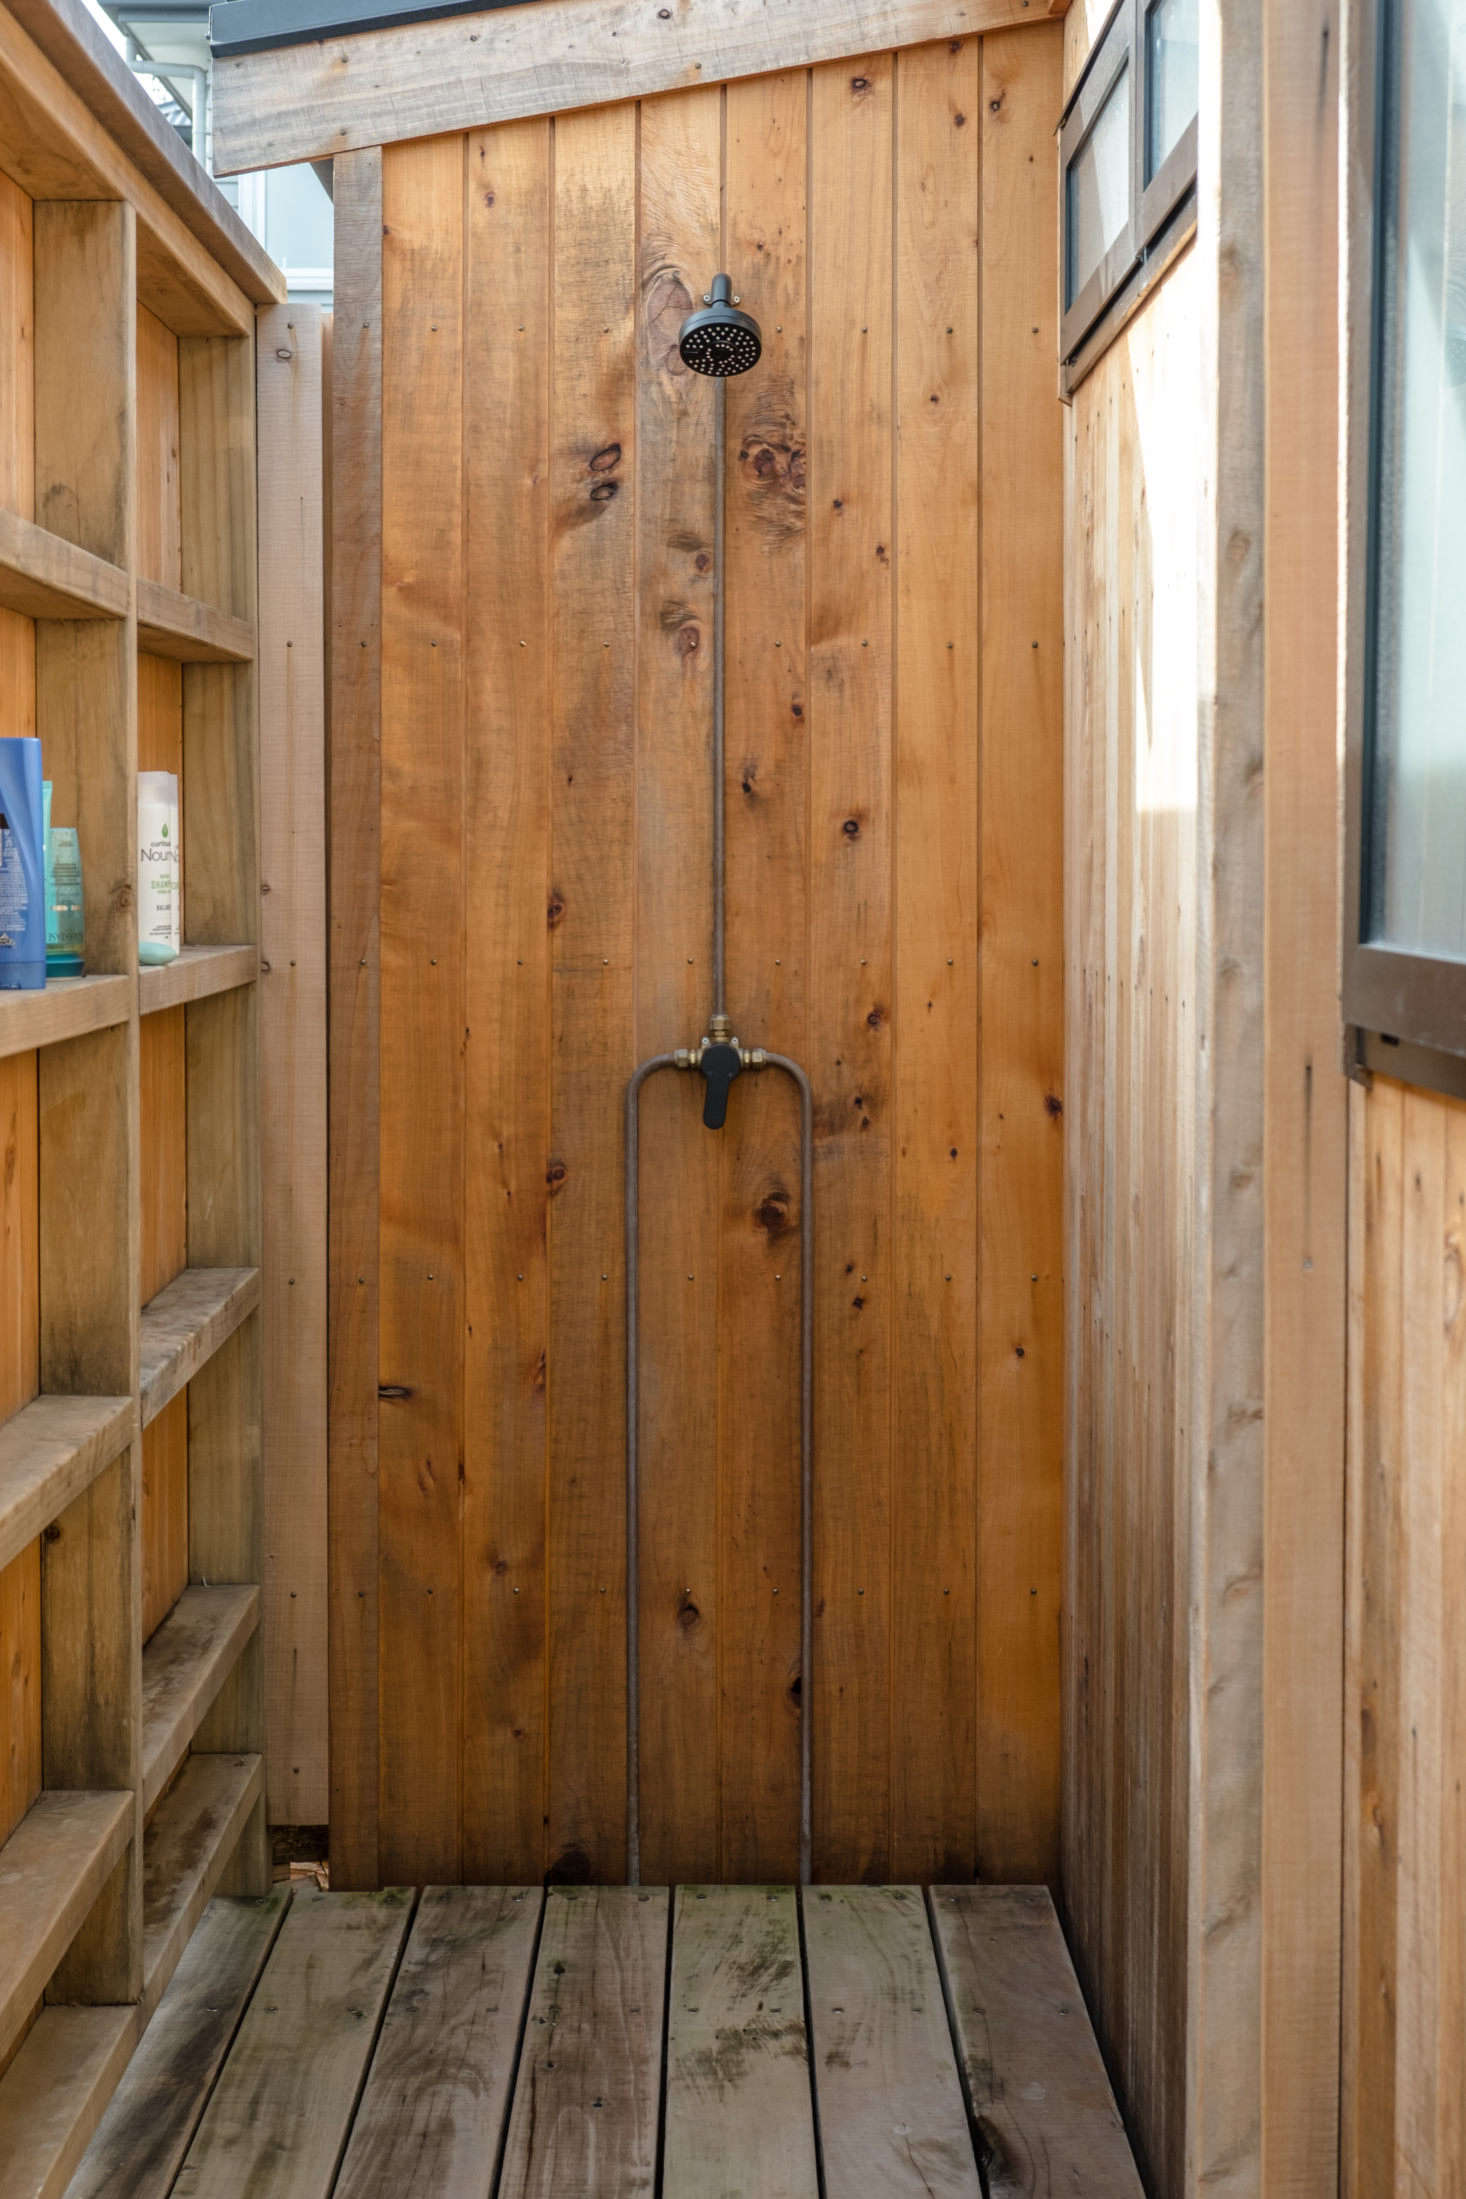 To complete the cabin vibe, there's an outdoor shower in the back.